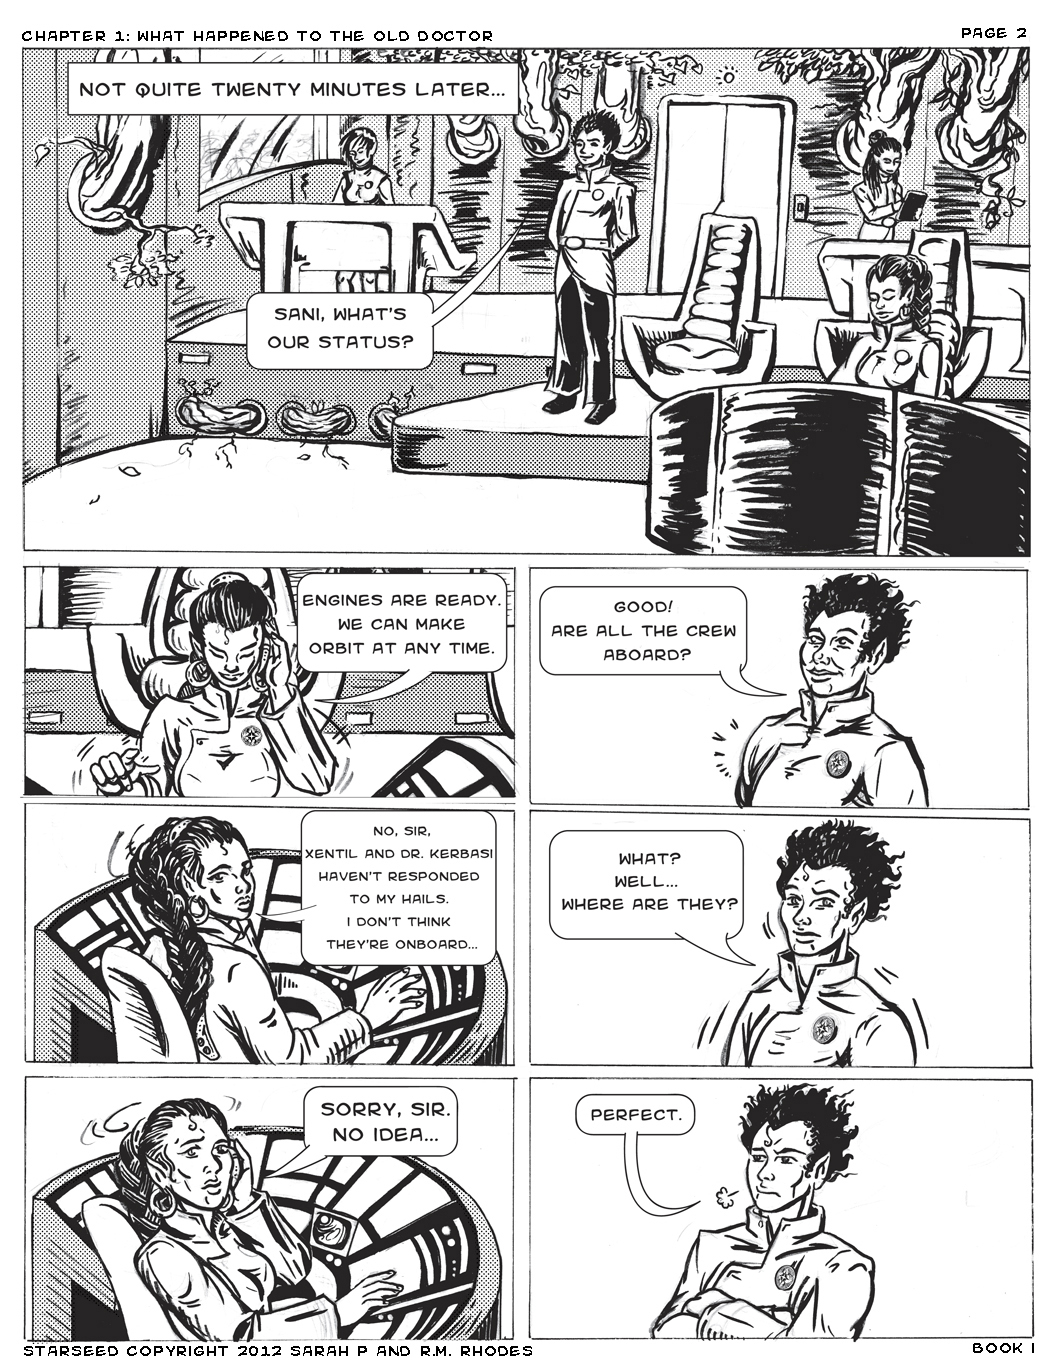 Book1 Page2